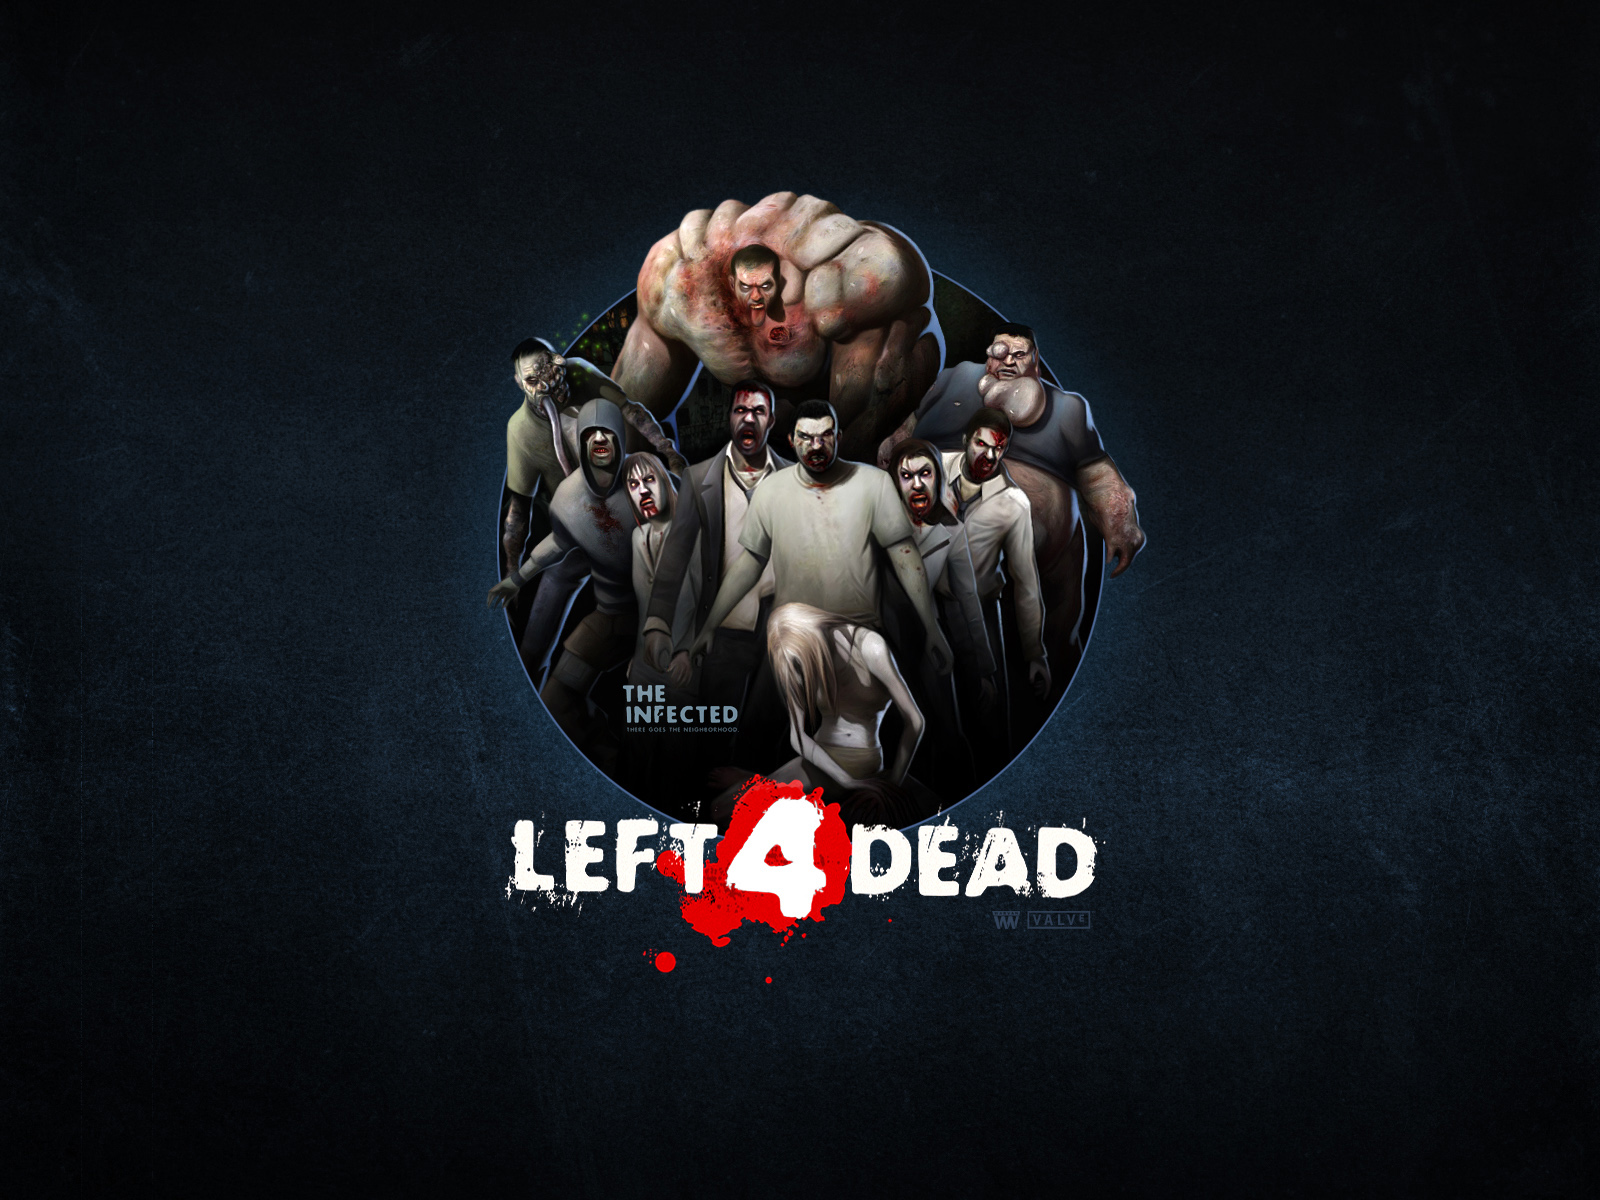 Left 4 dead 3 nudity exposed picture